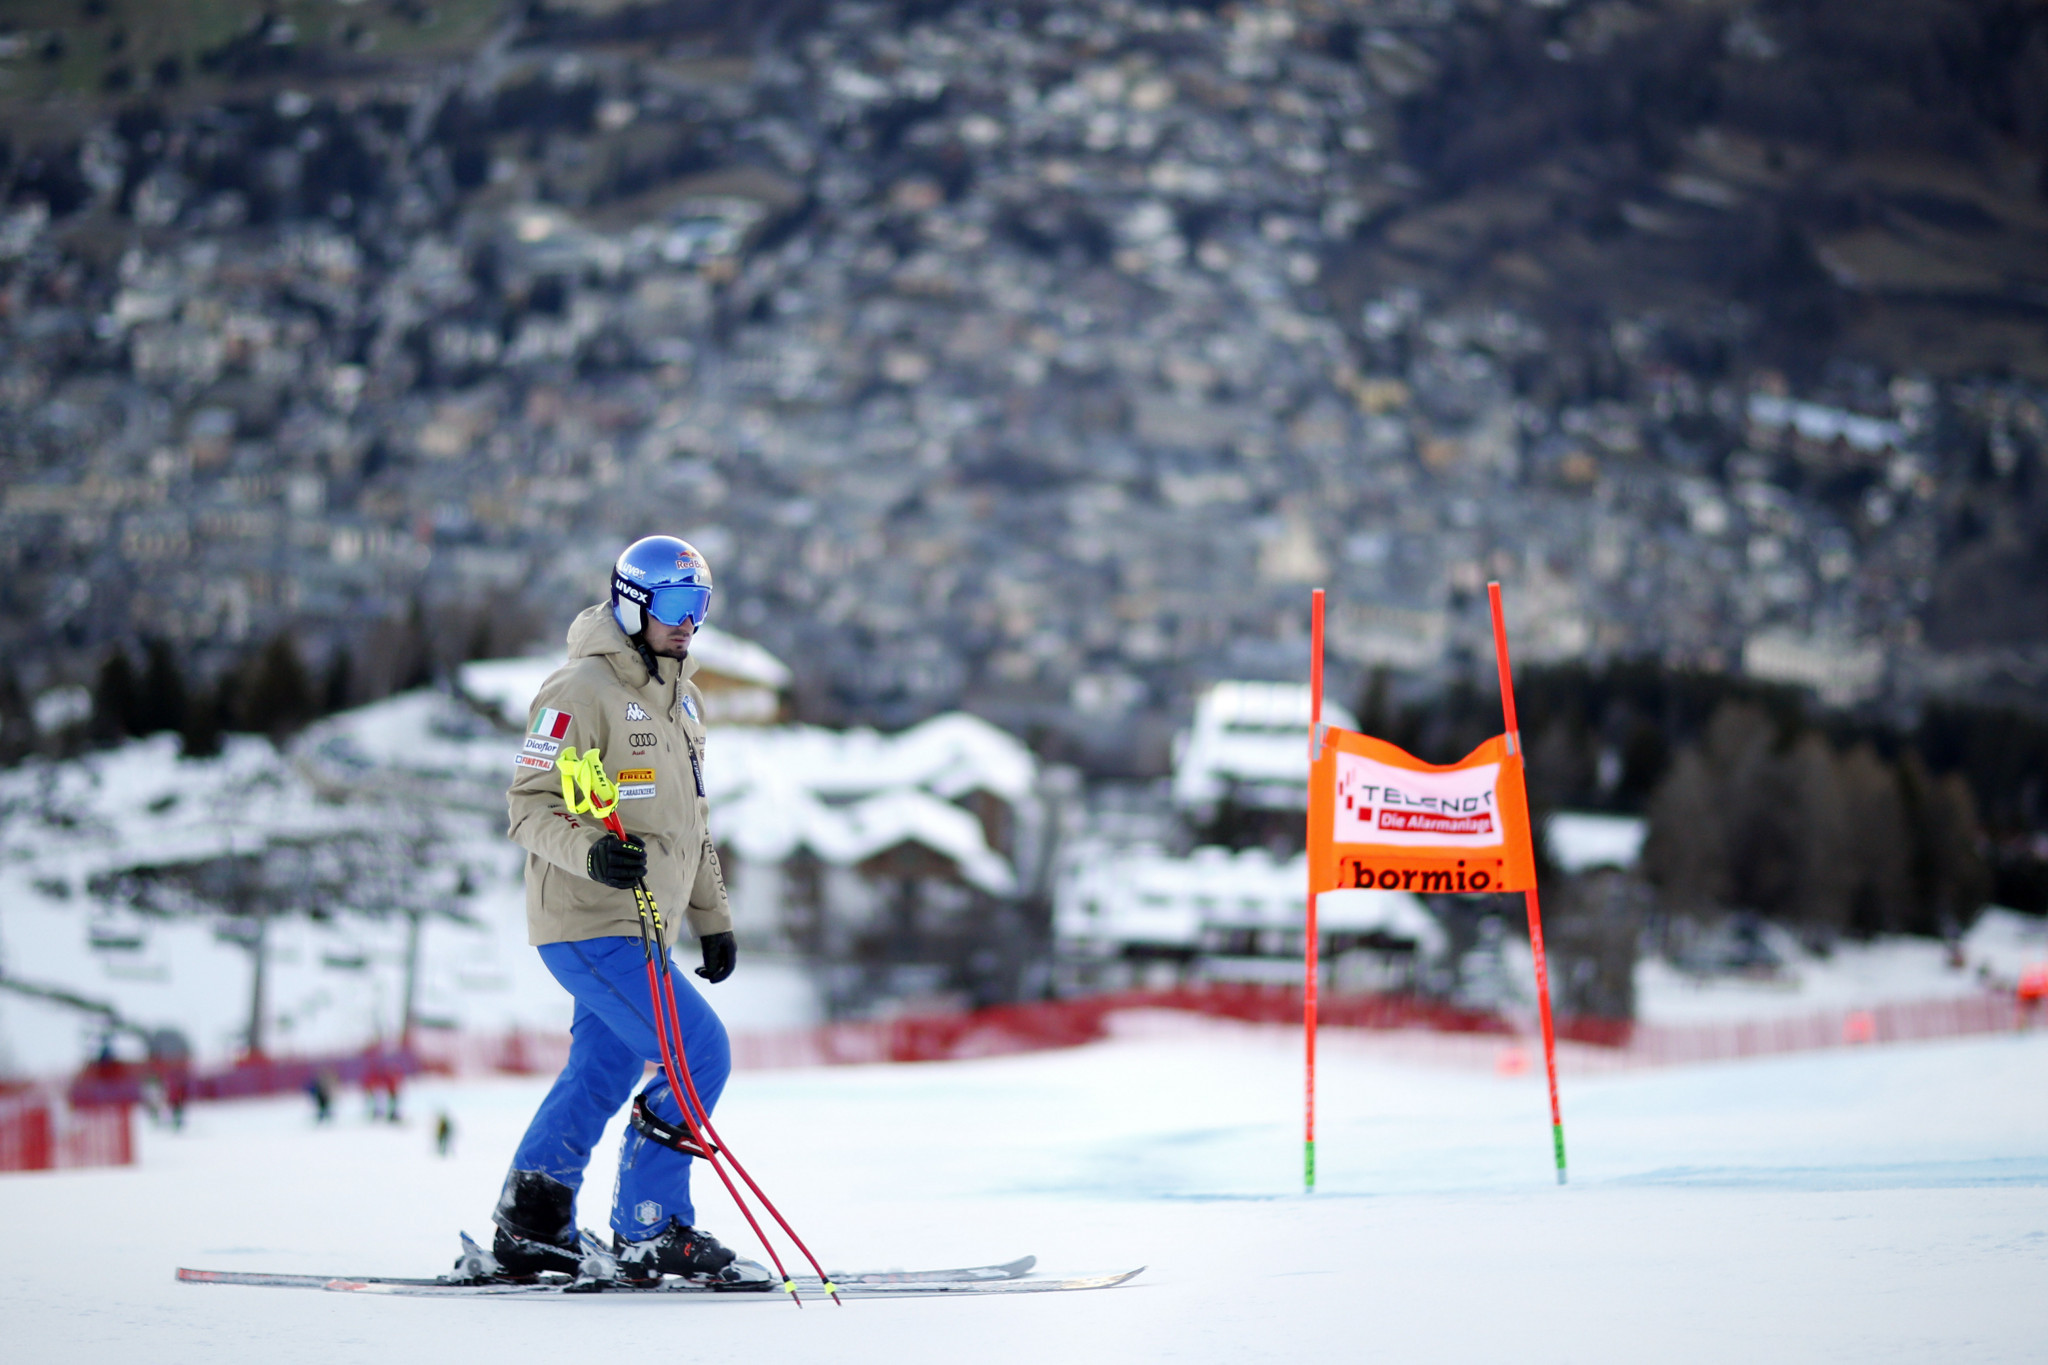 FISI President critical of Bormio's lack of progress over 2026 Winter Olympics upgrades